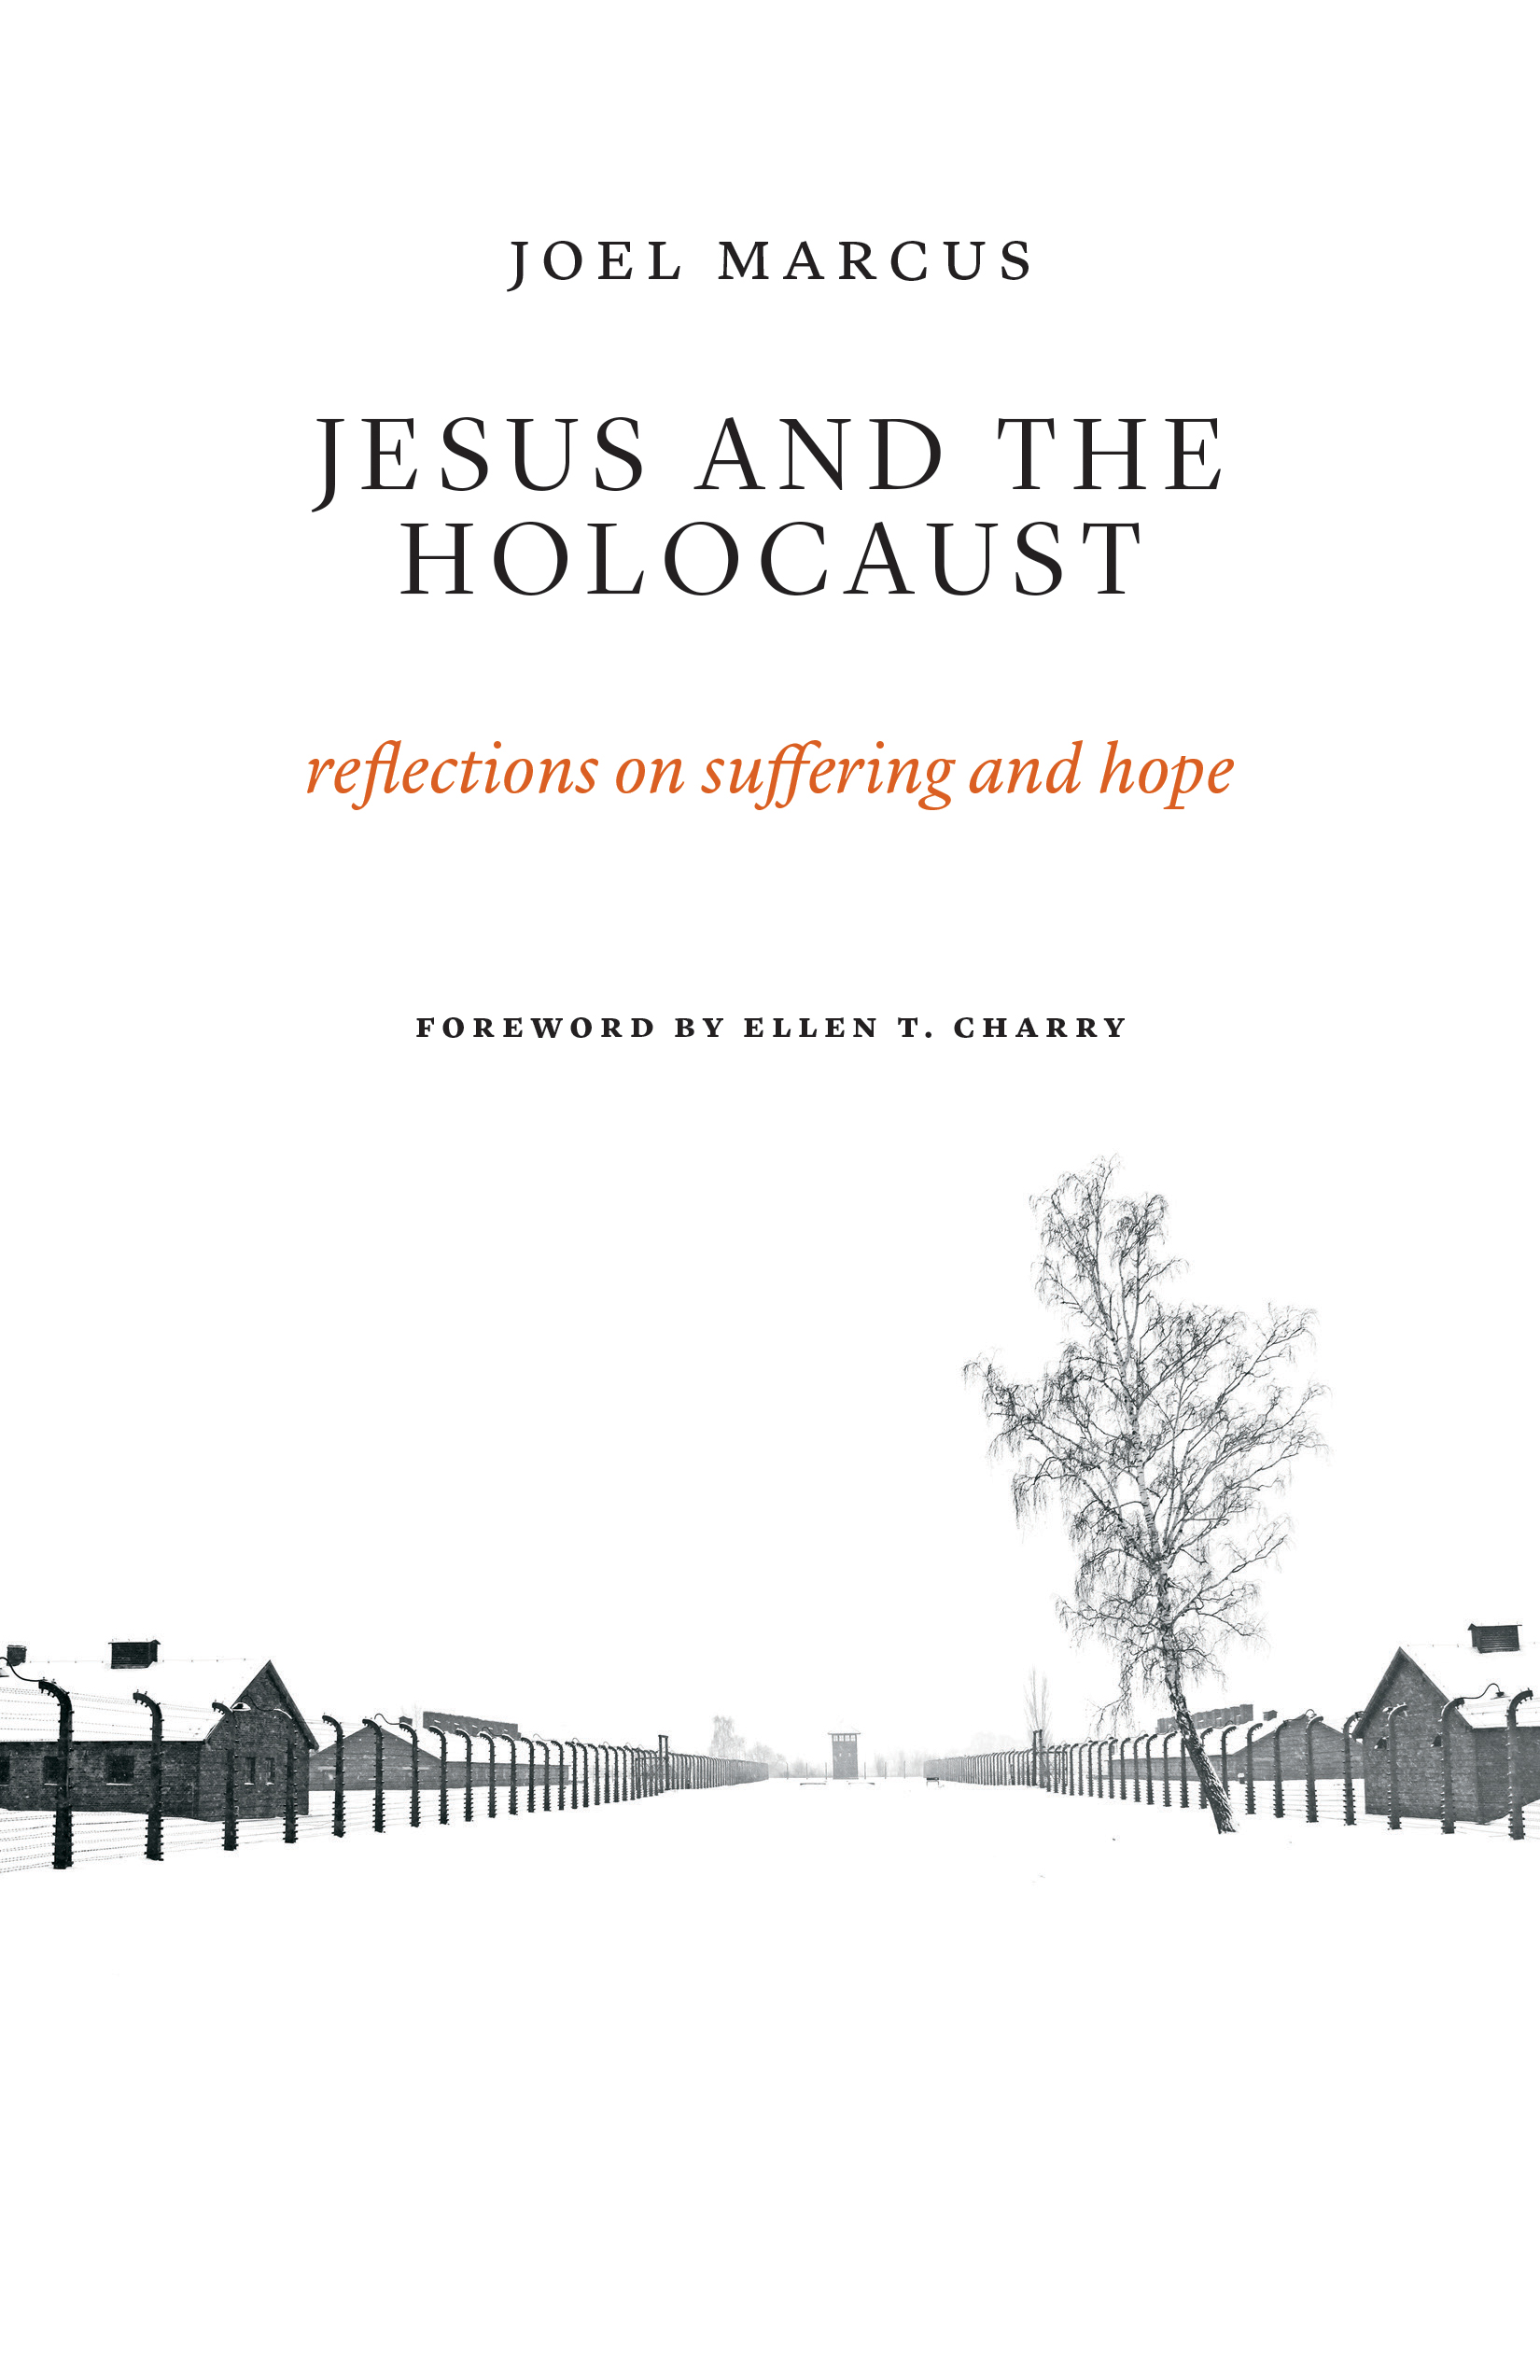 jesus and the holocaust joel marcus eerdmans